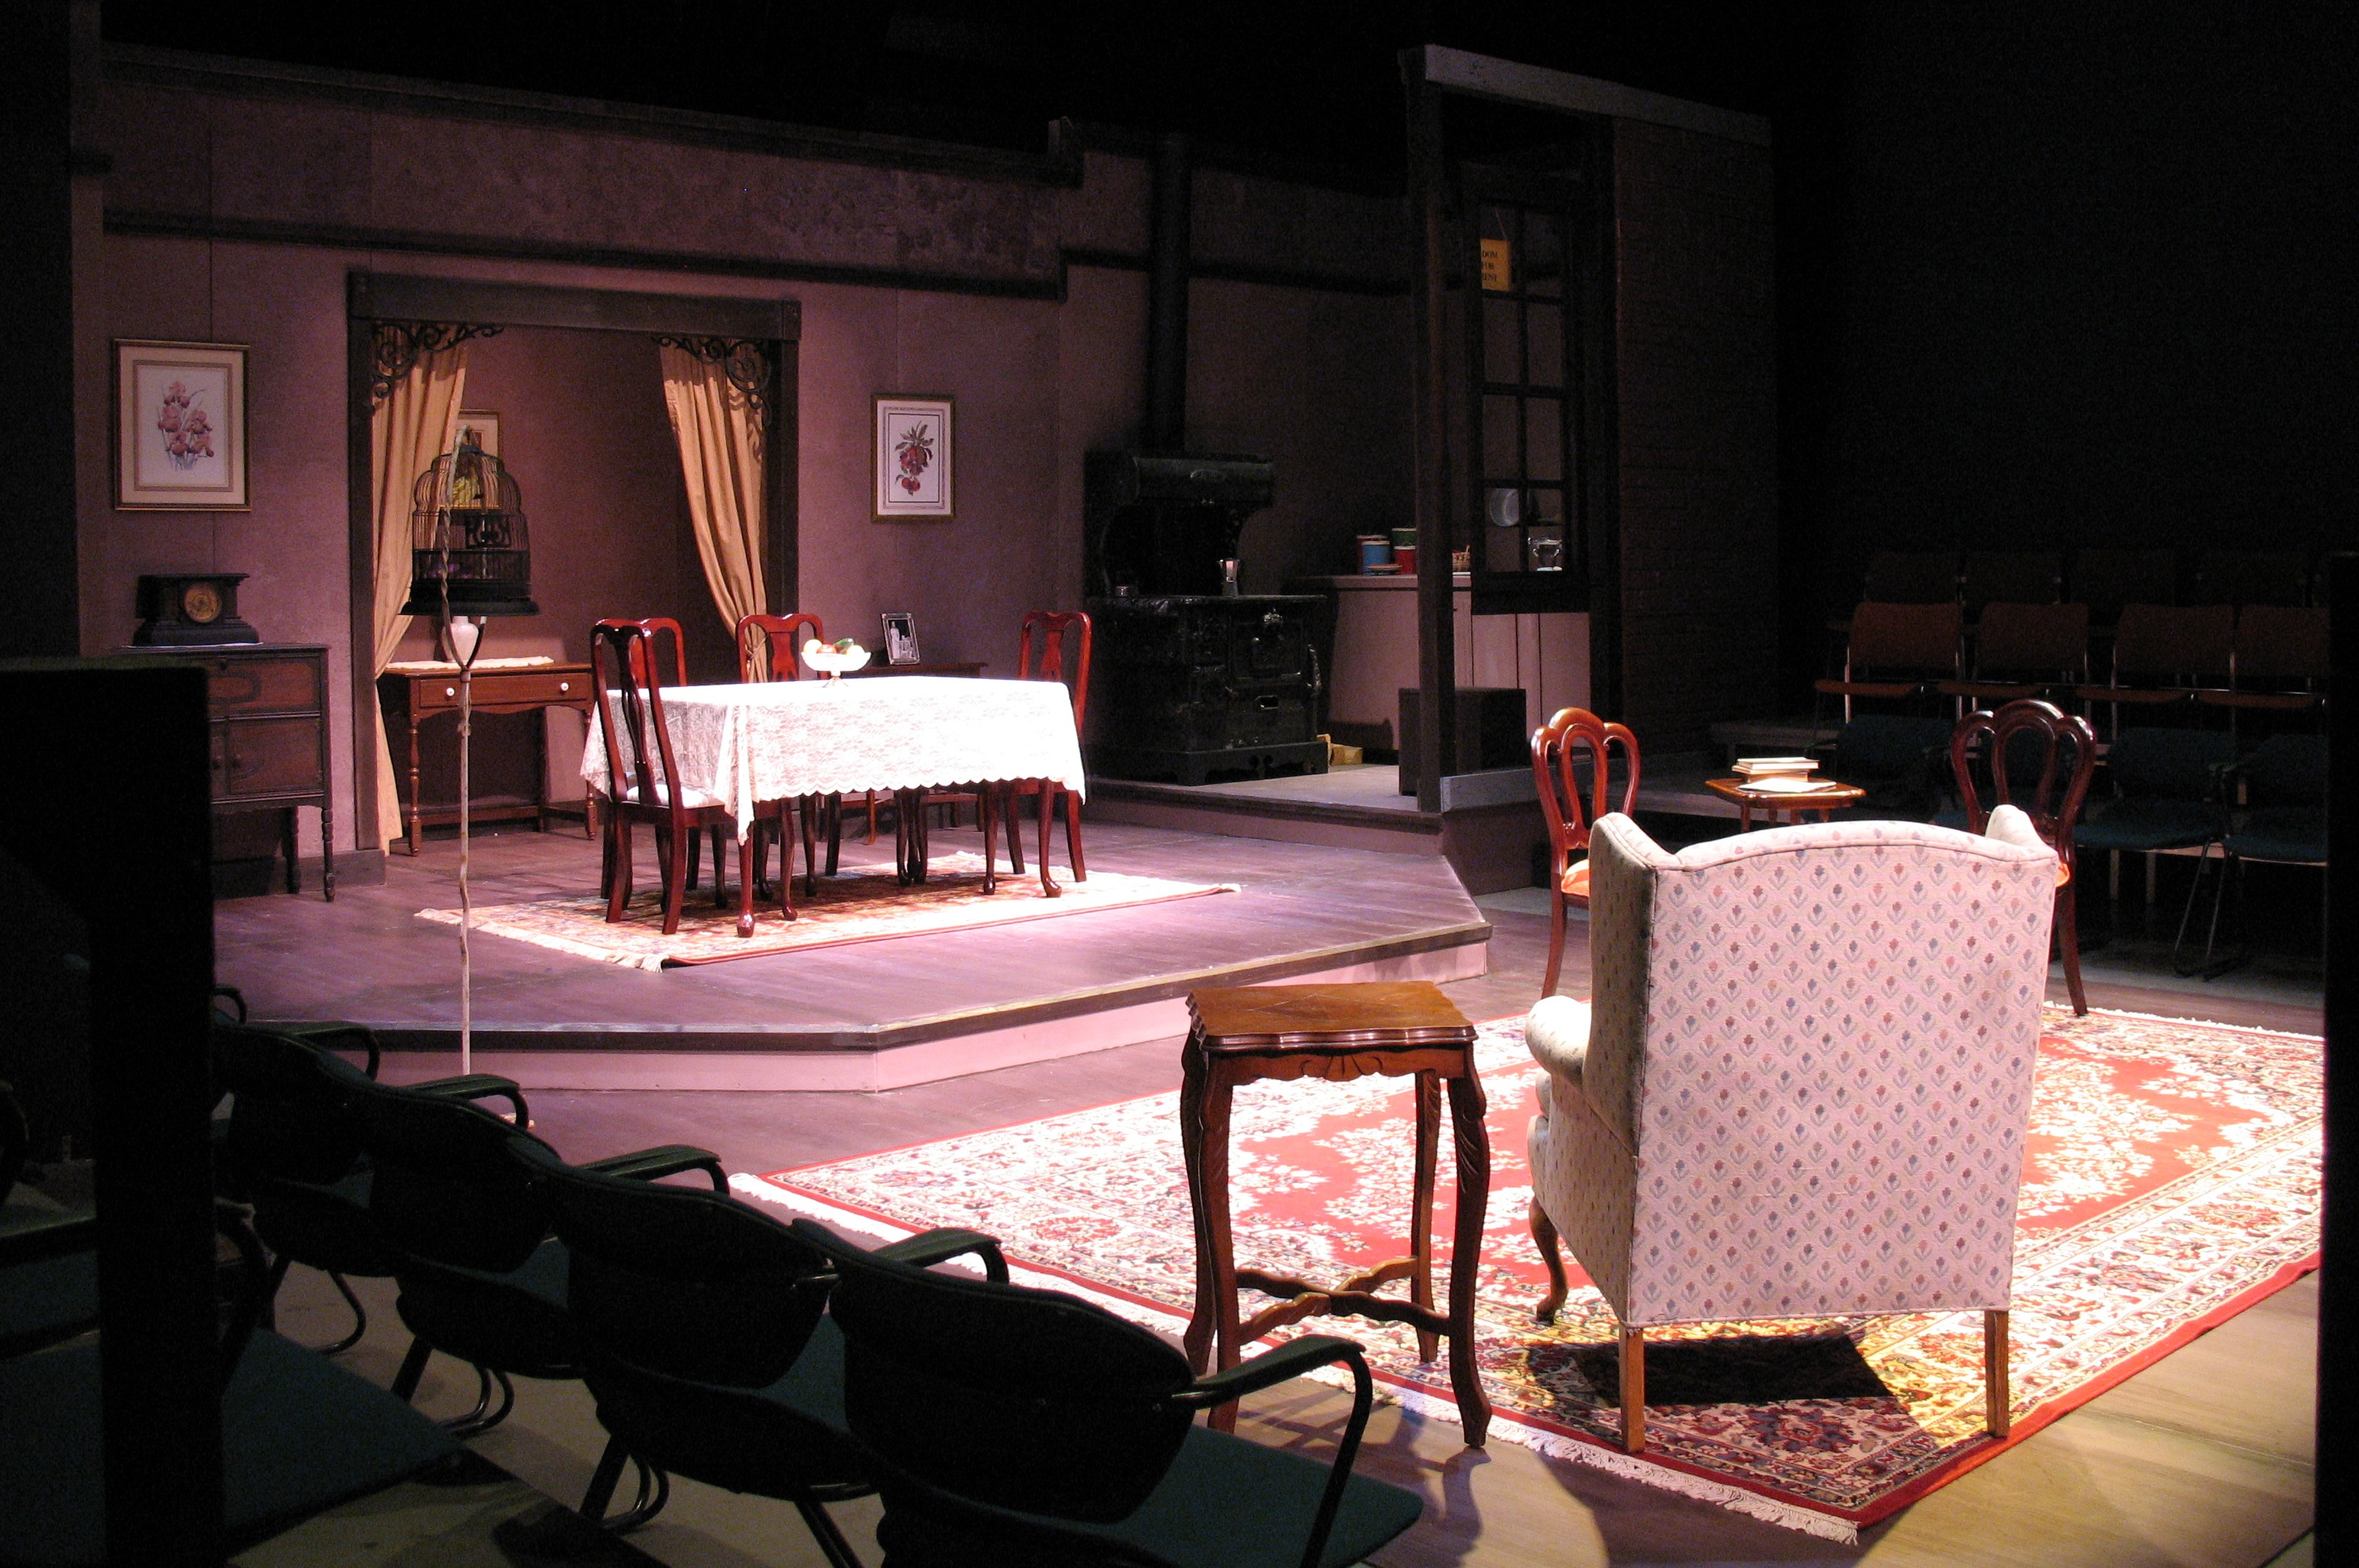 SCENIC & LIGHTING DESIGN: The Underpants Whittier College 2008